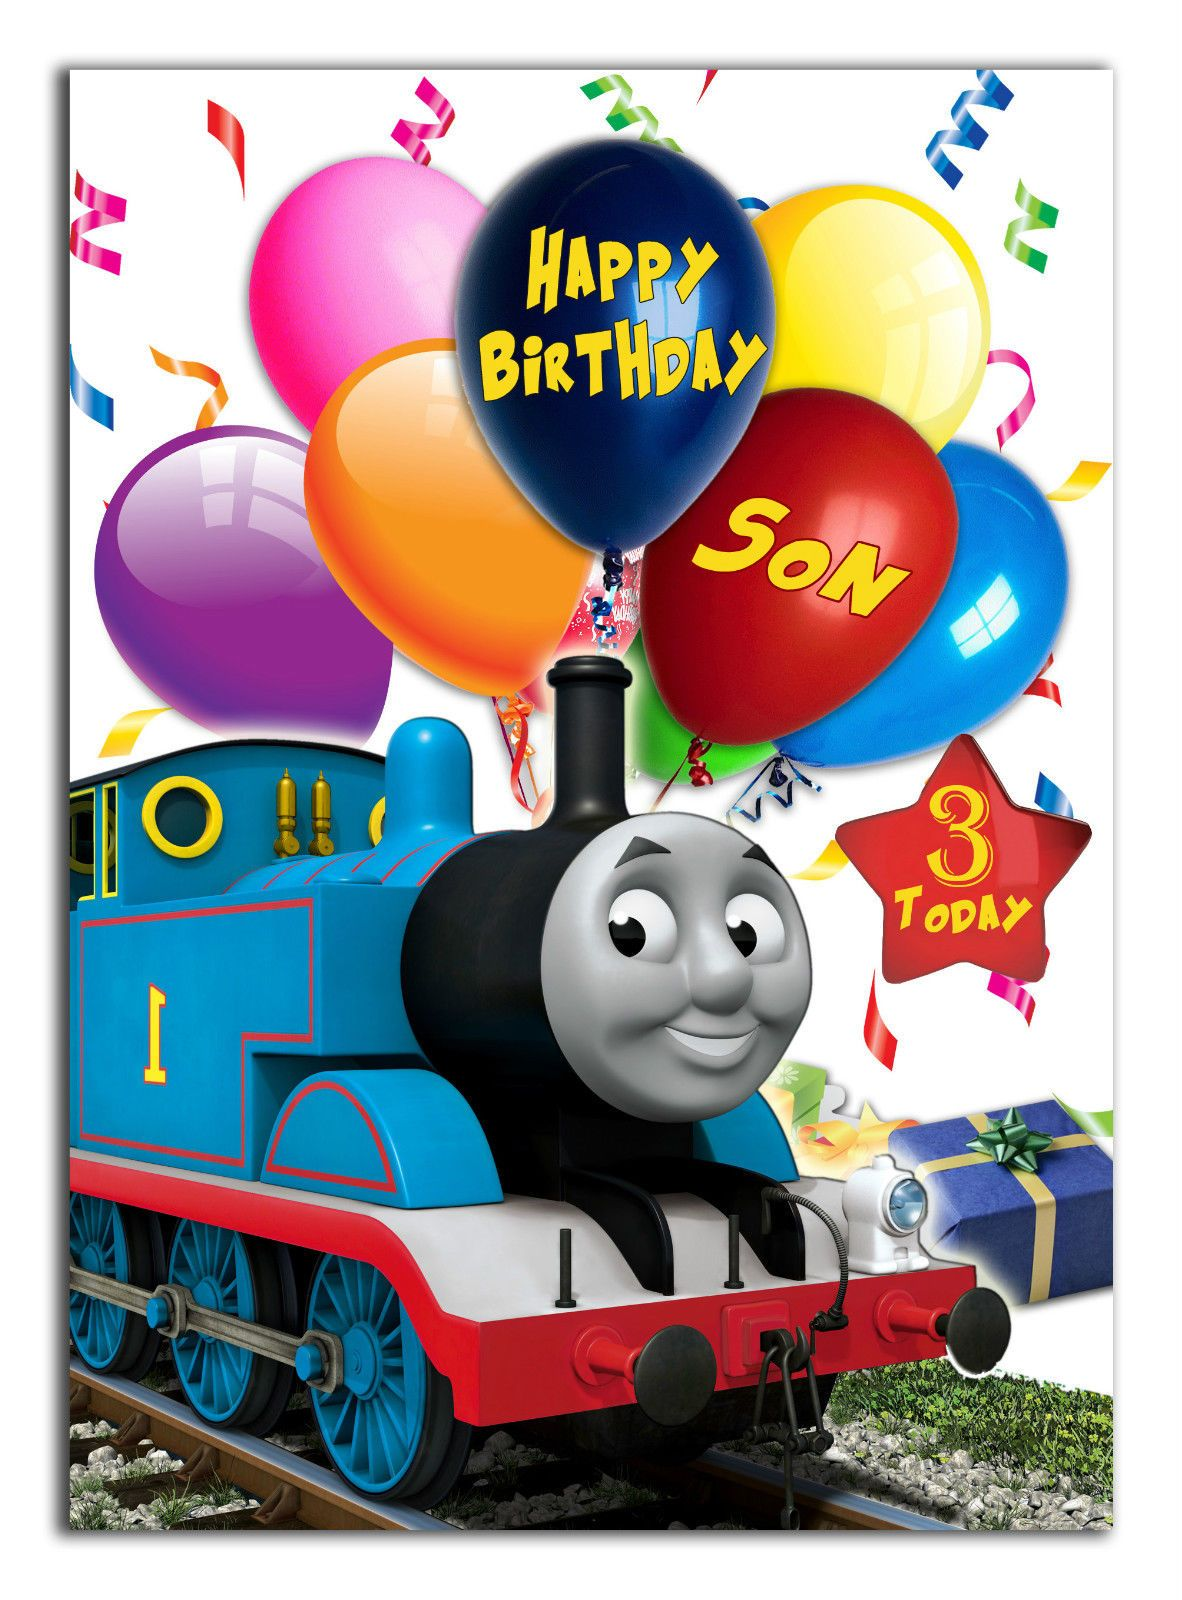 C486 Large Personalised Birthday Card Custom Made For Any Name Thomastrain Birthday Wishes For Kids Belated Birthday Card 18th Birthday Cards